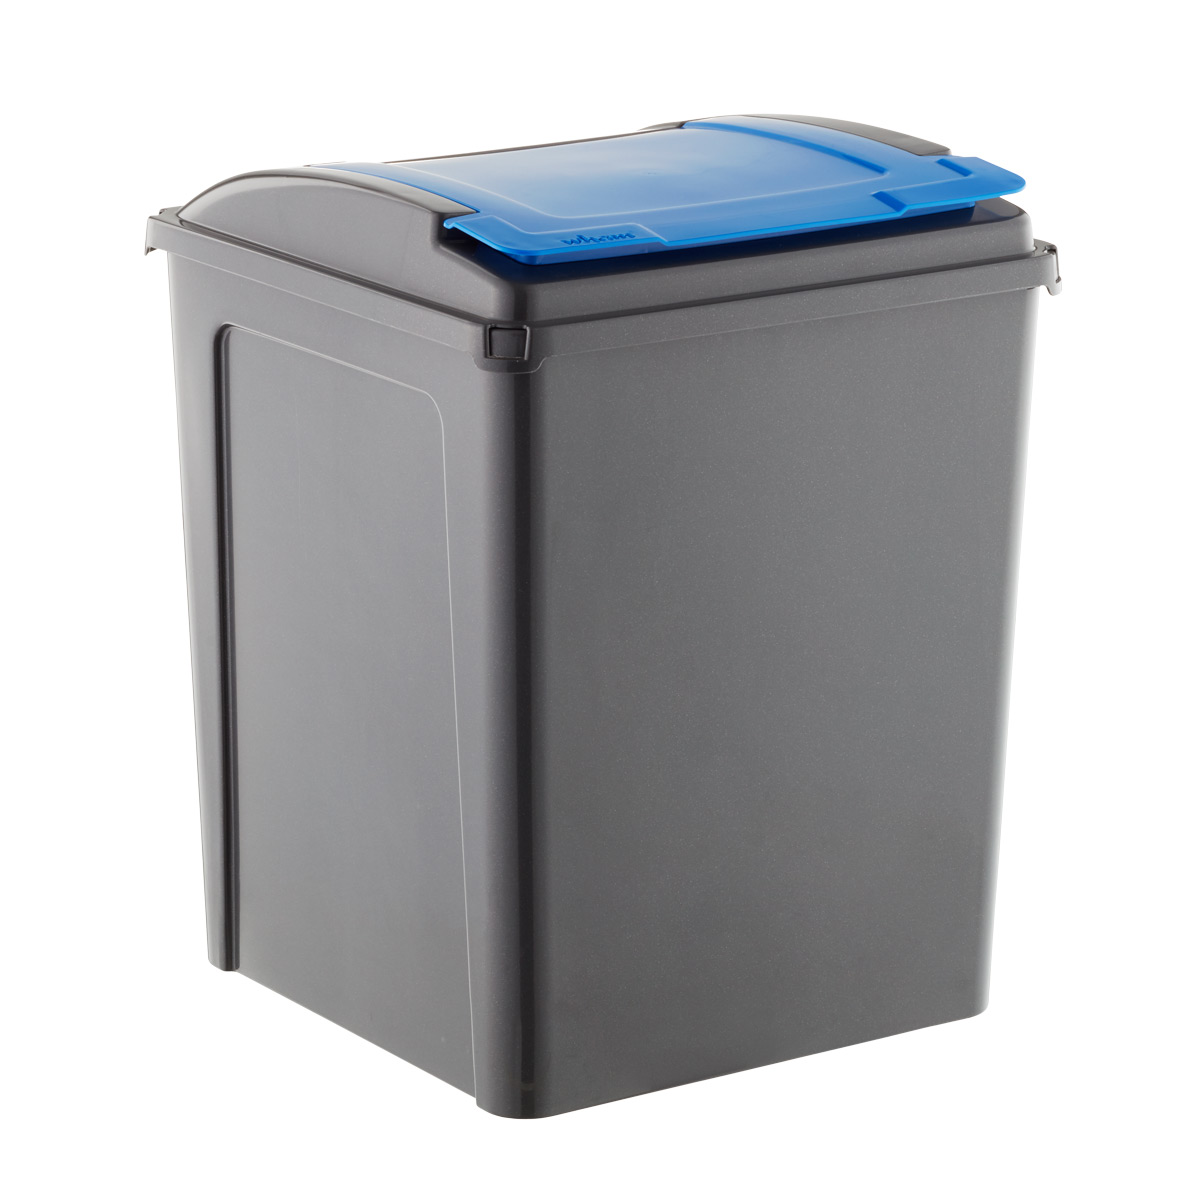 small recycling bins for kitchen bundles containers compost recycle the container store bin